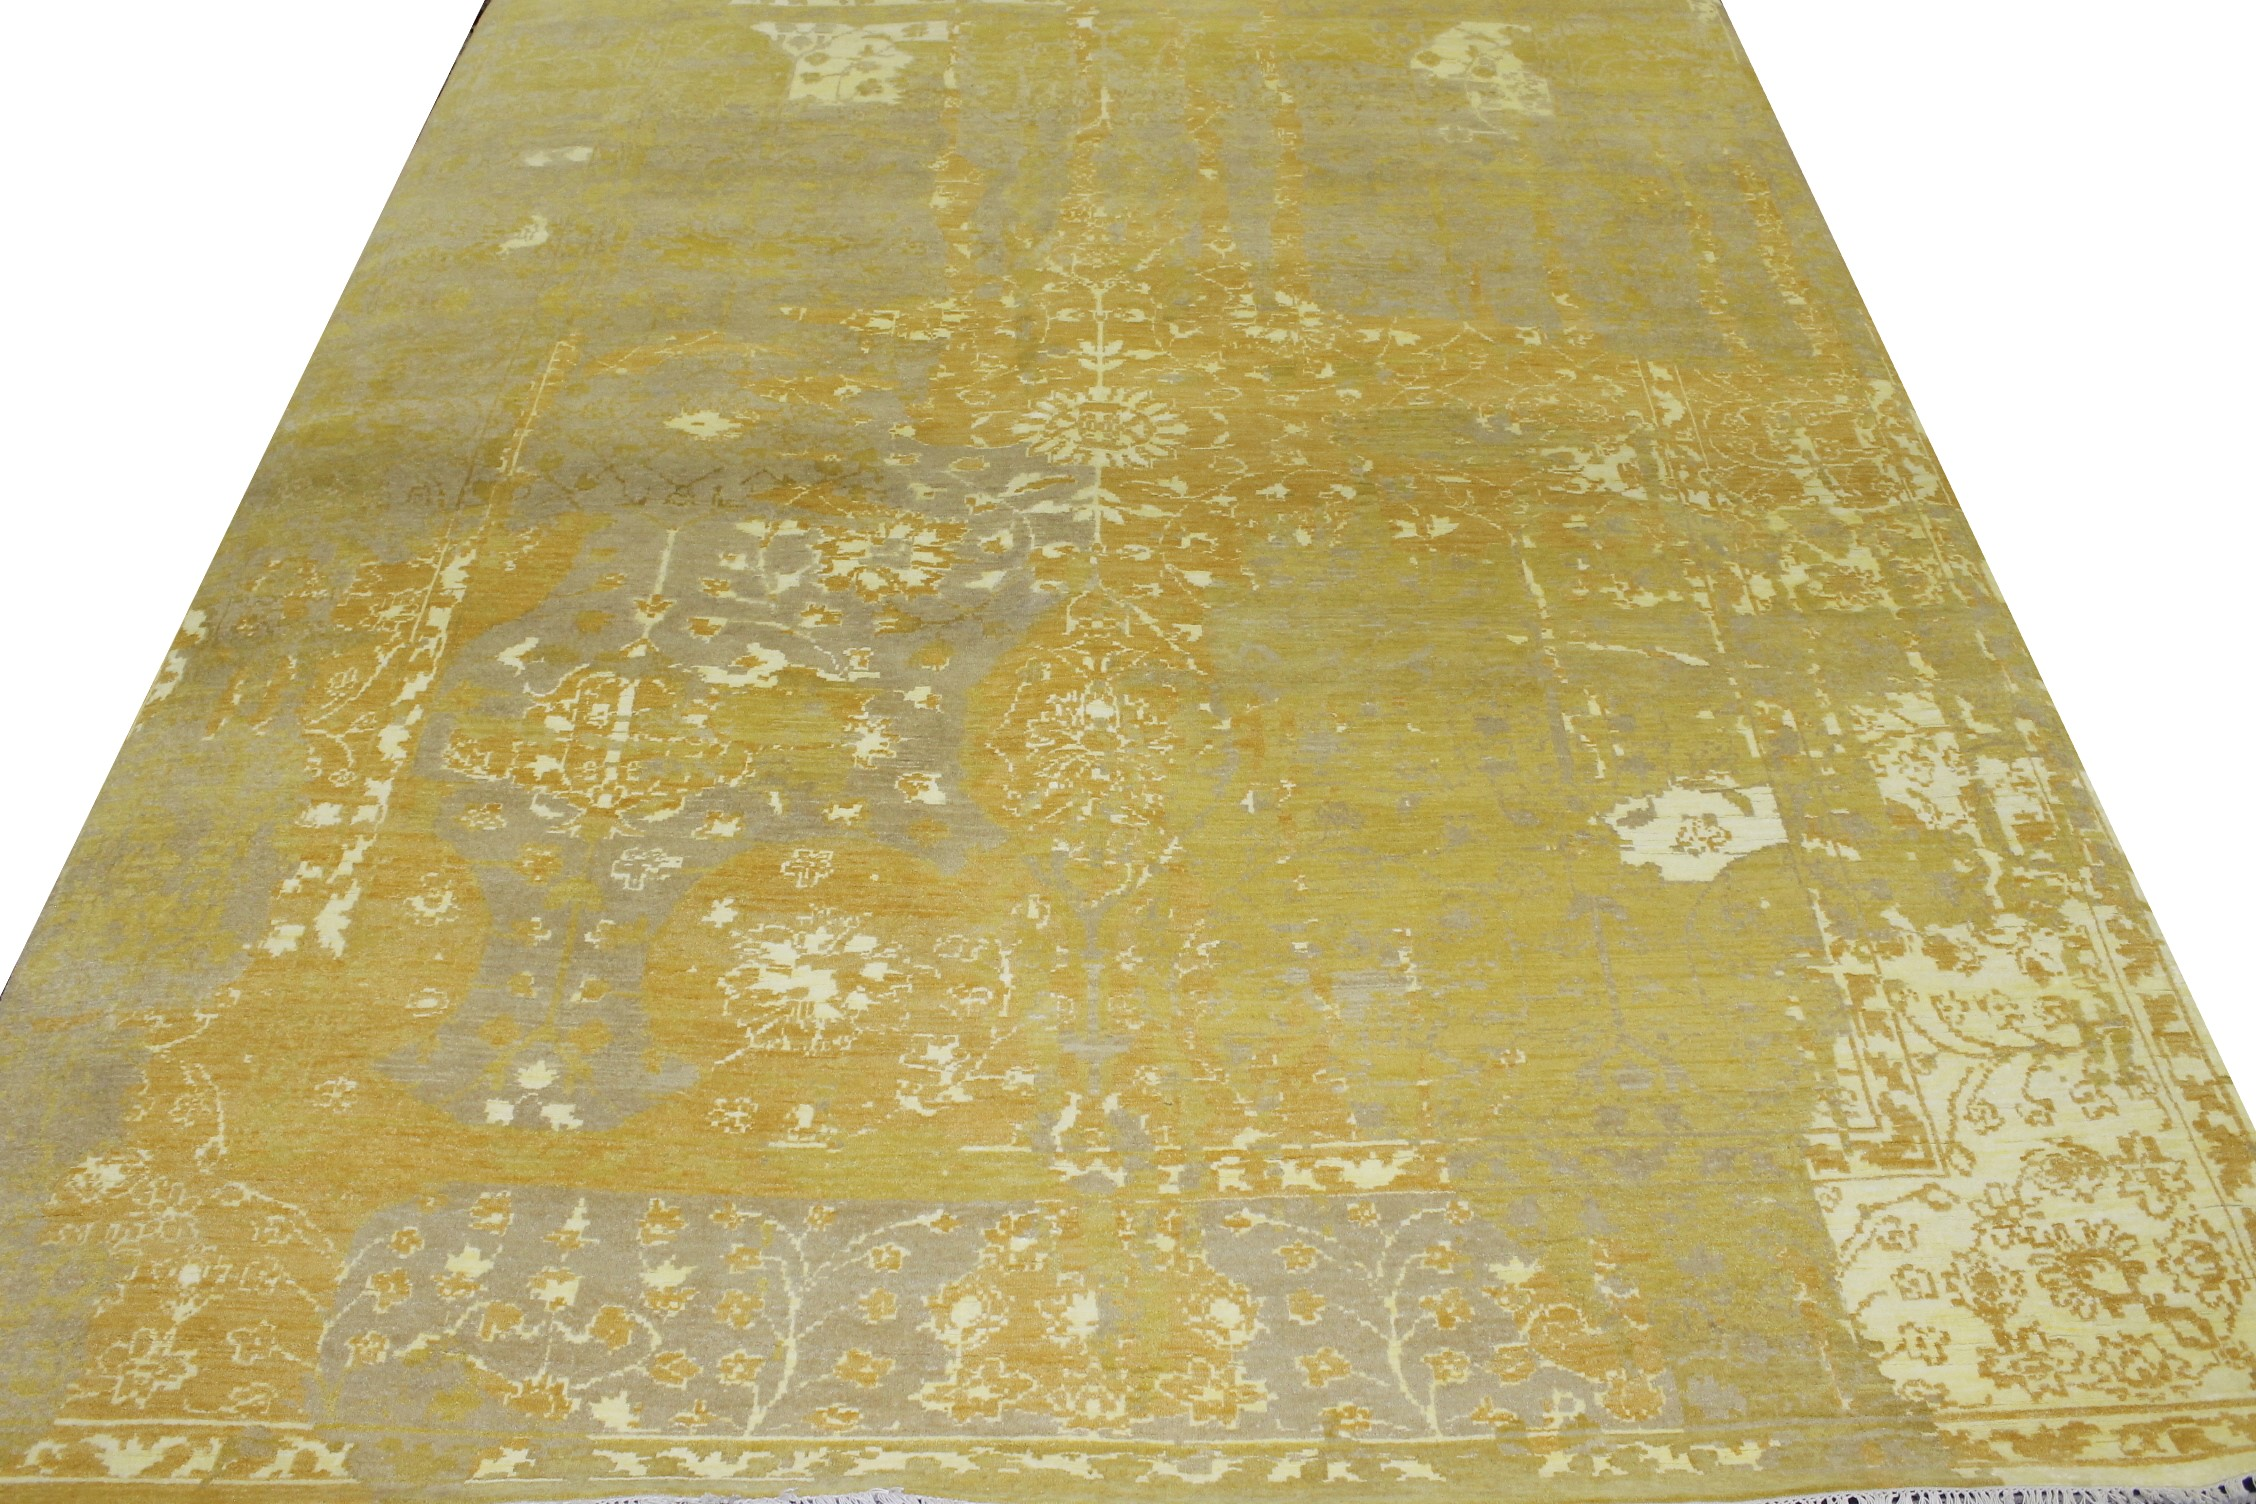 9x12 Contemporary Hand Knotted Wool Area Rug - MR022208